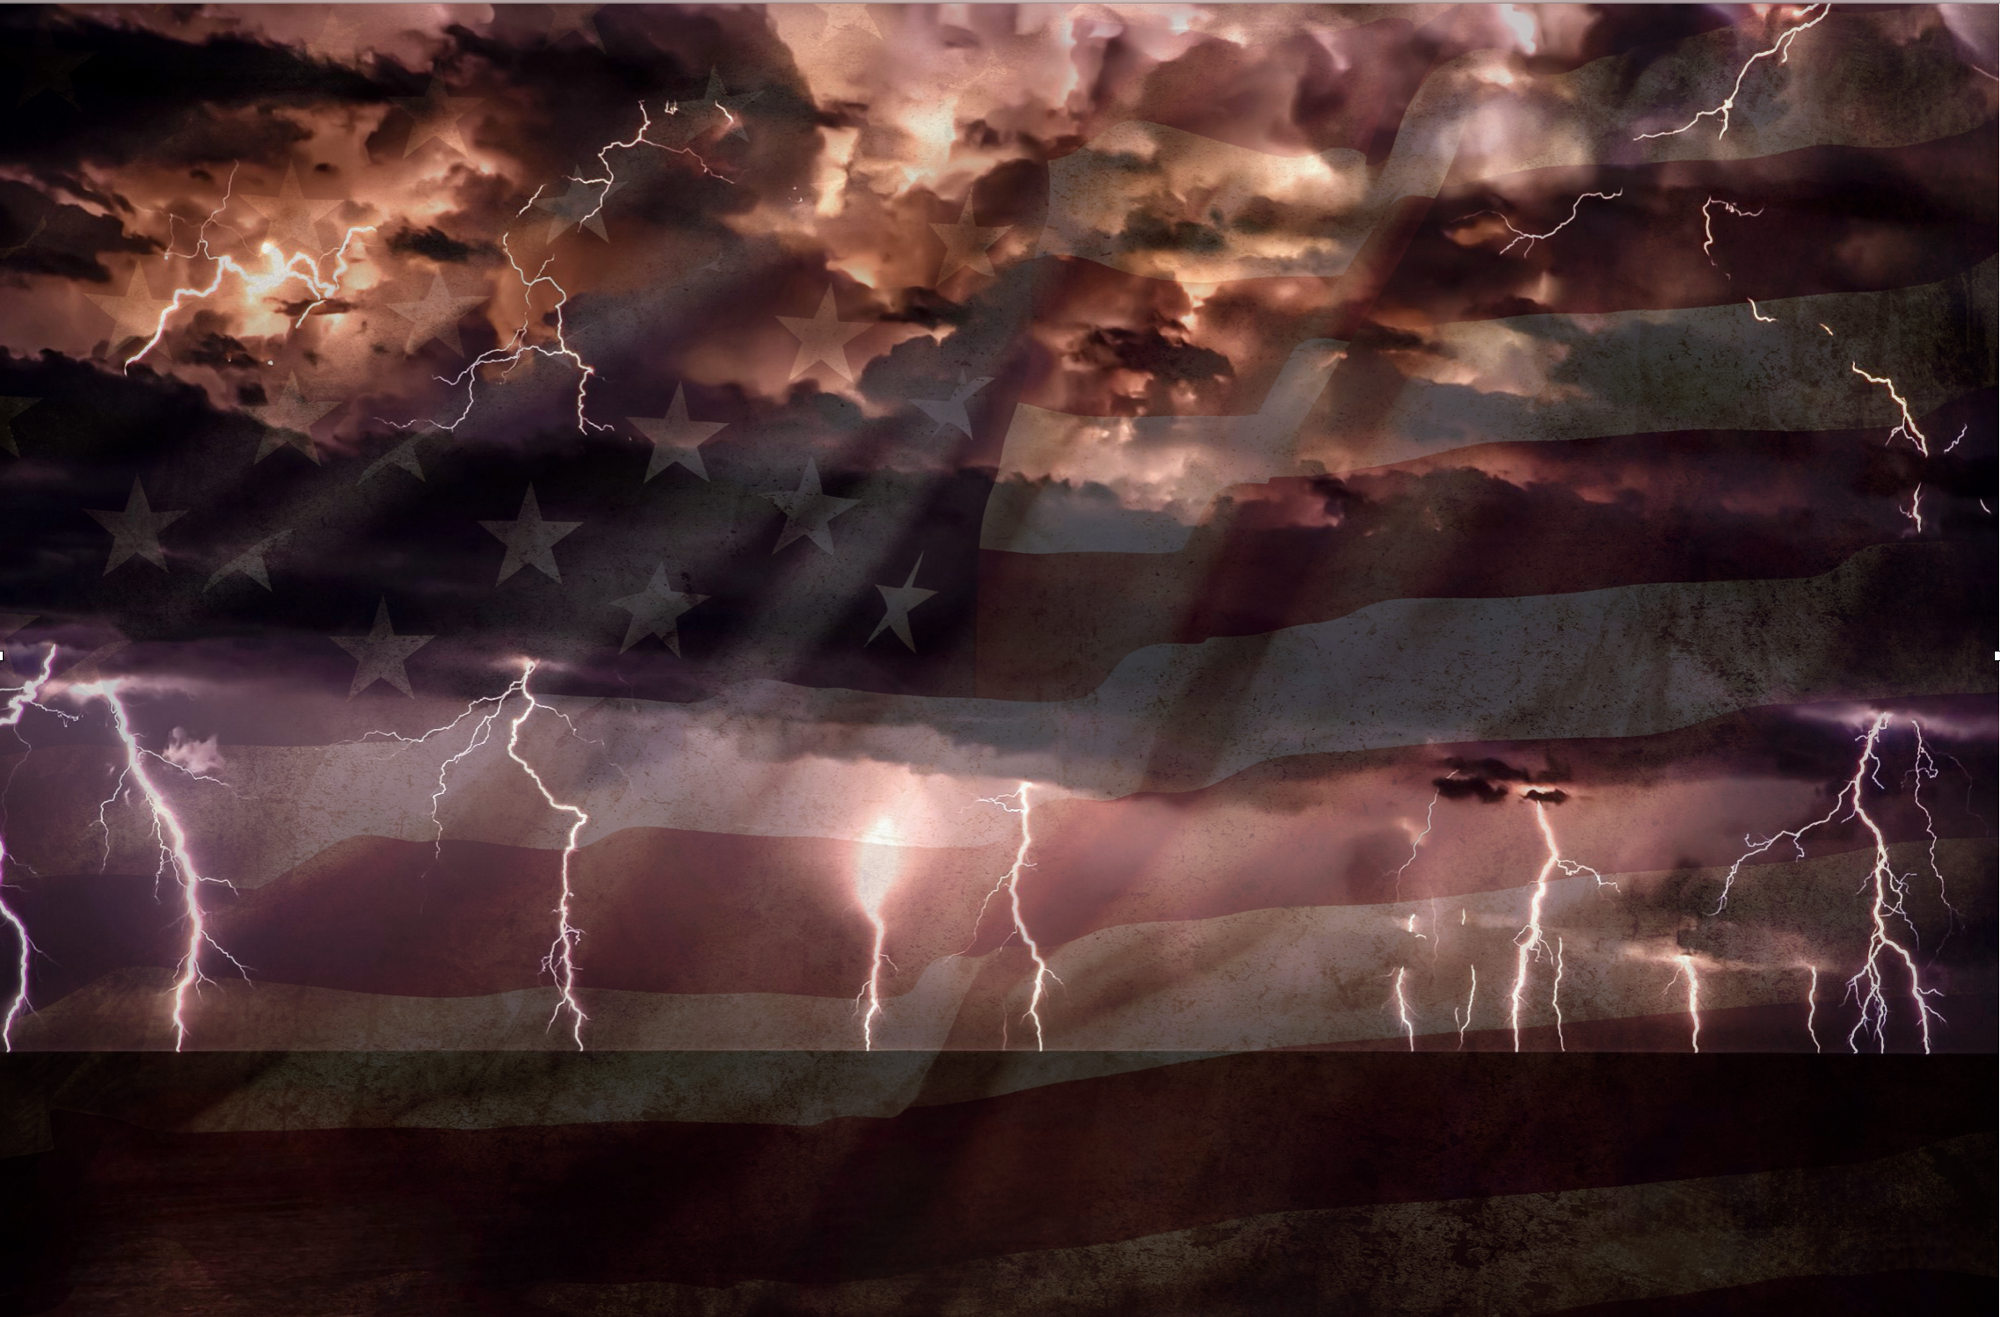 A dark, foreboding line of lightning bolts striking the ground in the distance, overlaying a US flag.